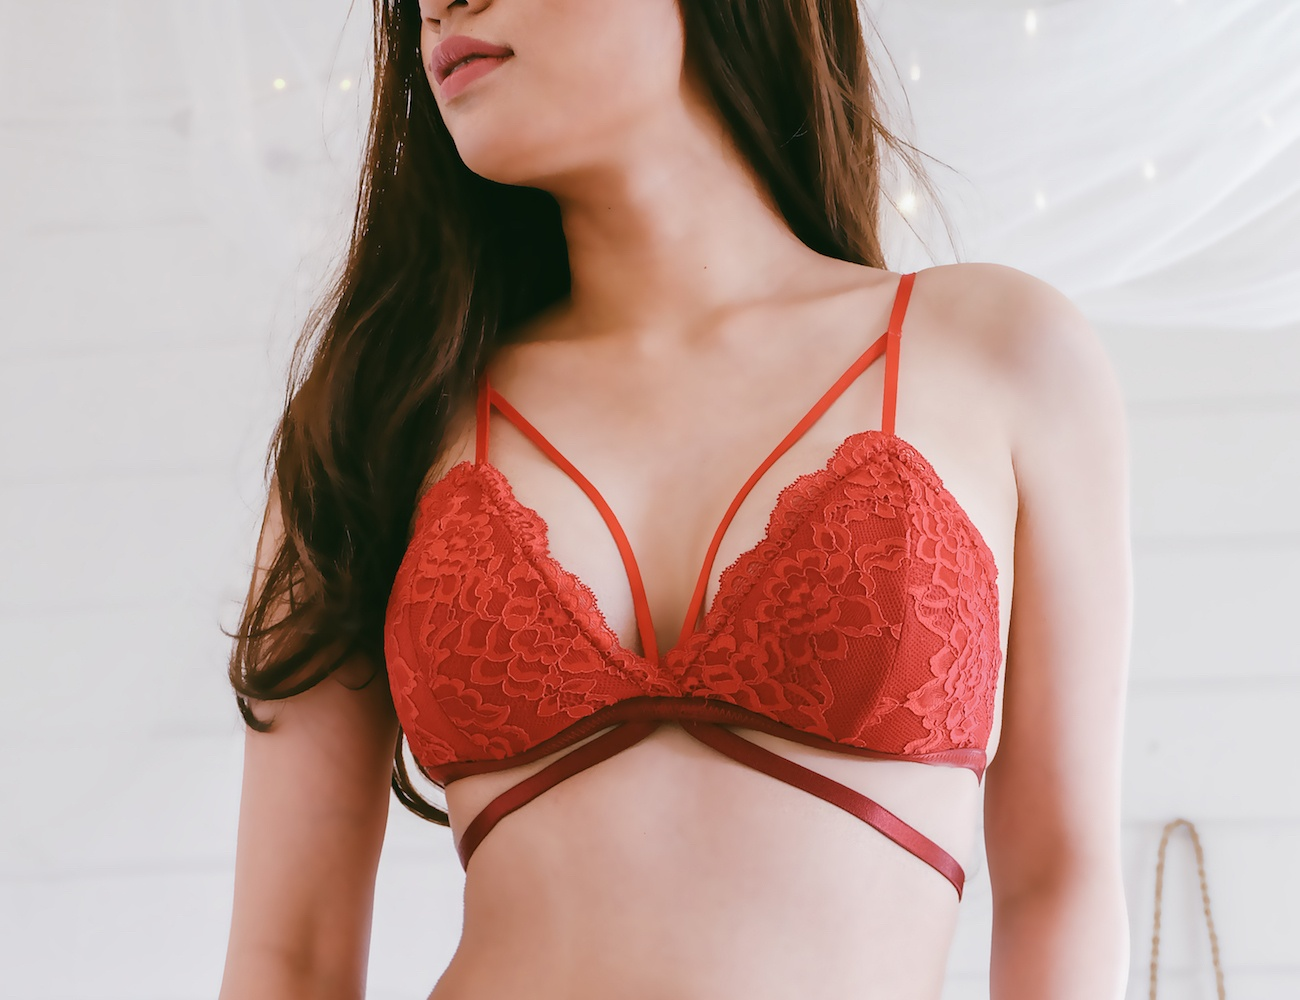 Affordable & Handmade Bralettes from Brooklyn